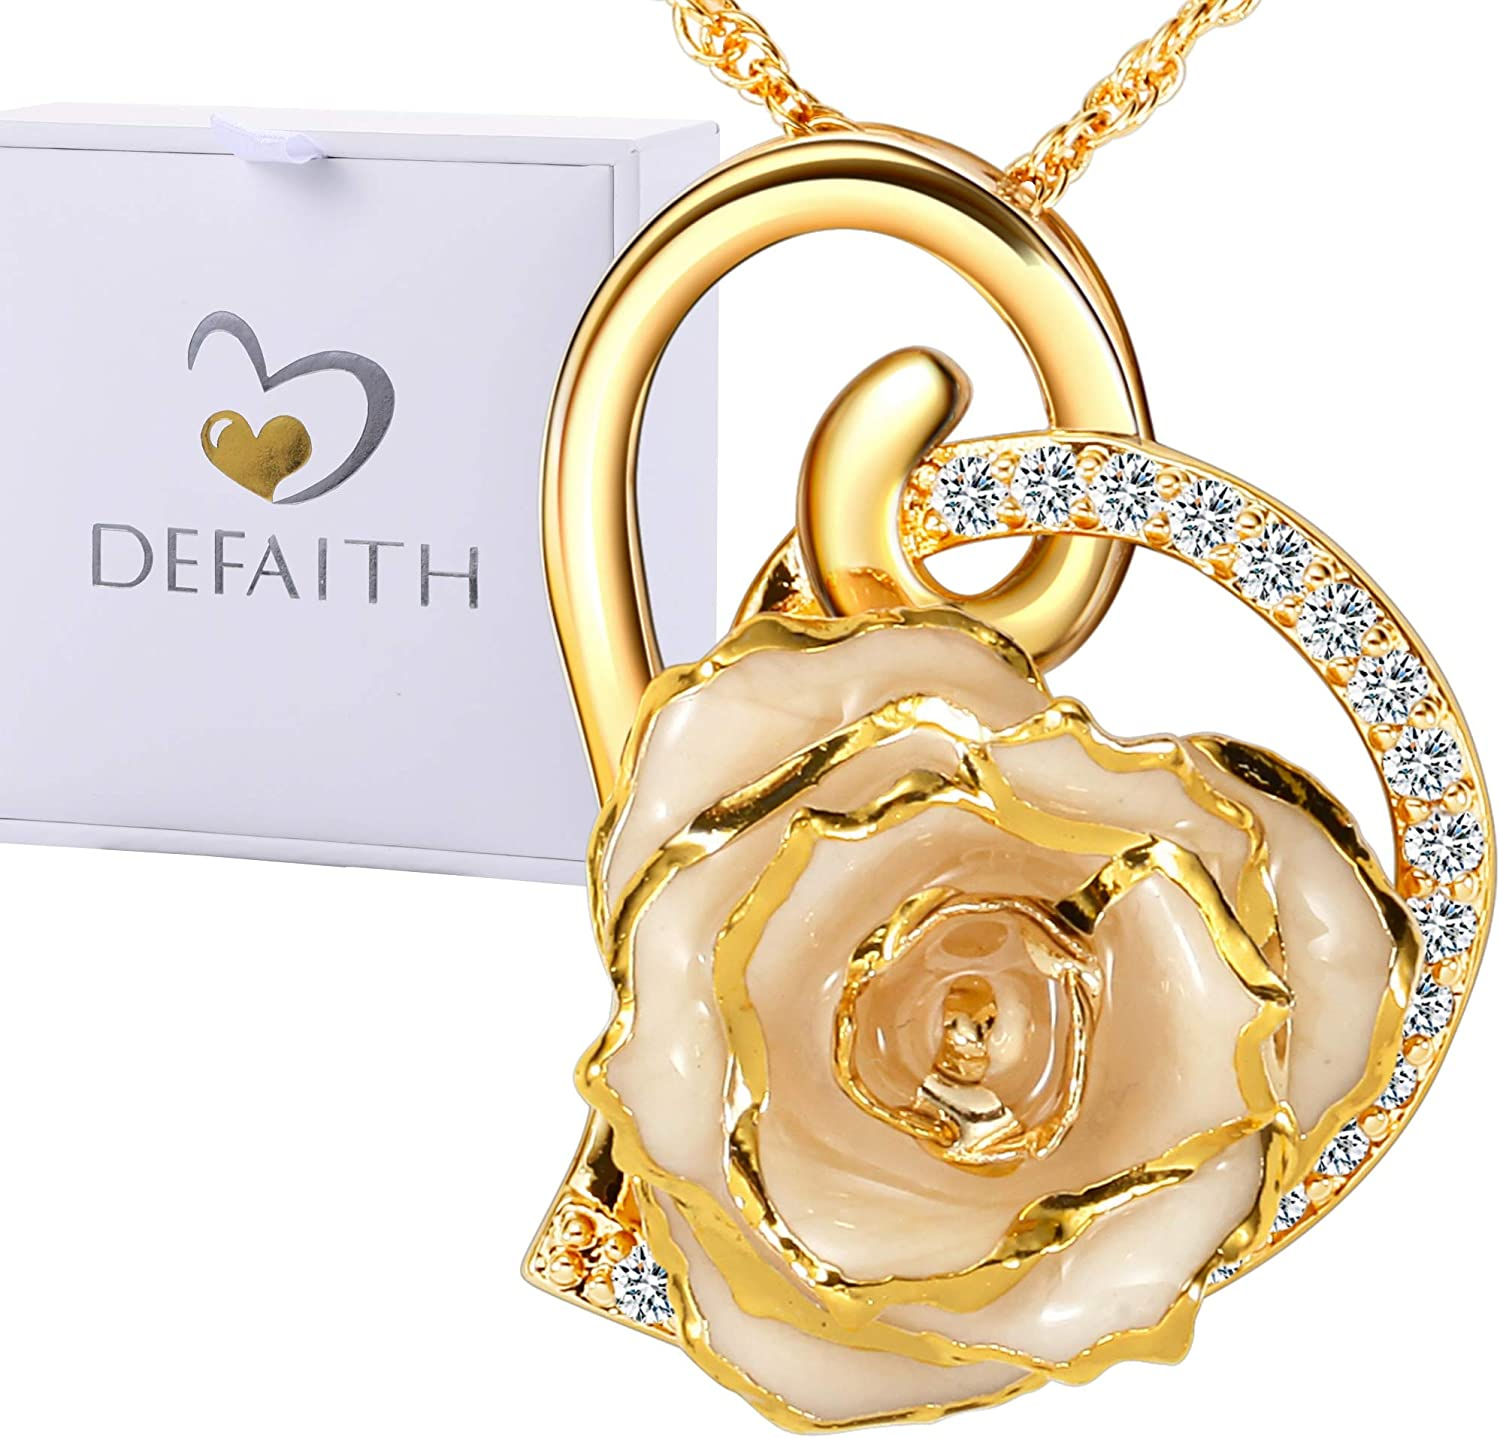 DEFAITH Real Rose Pendant Necklace 24K Gold Dipped, Best Gifts for her Wife Girlfriend Mother Women for Anniversary Valentine's Day Birthday